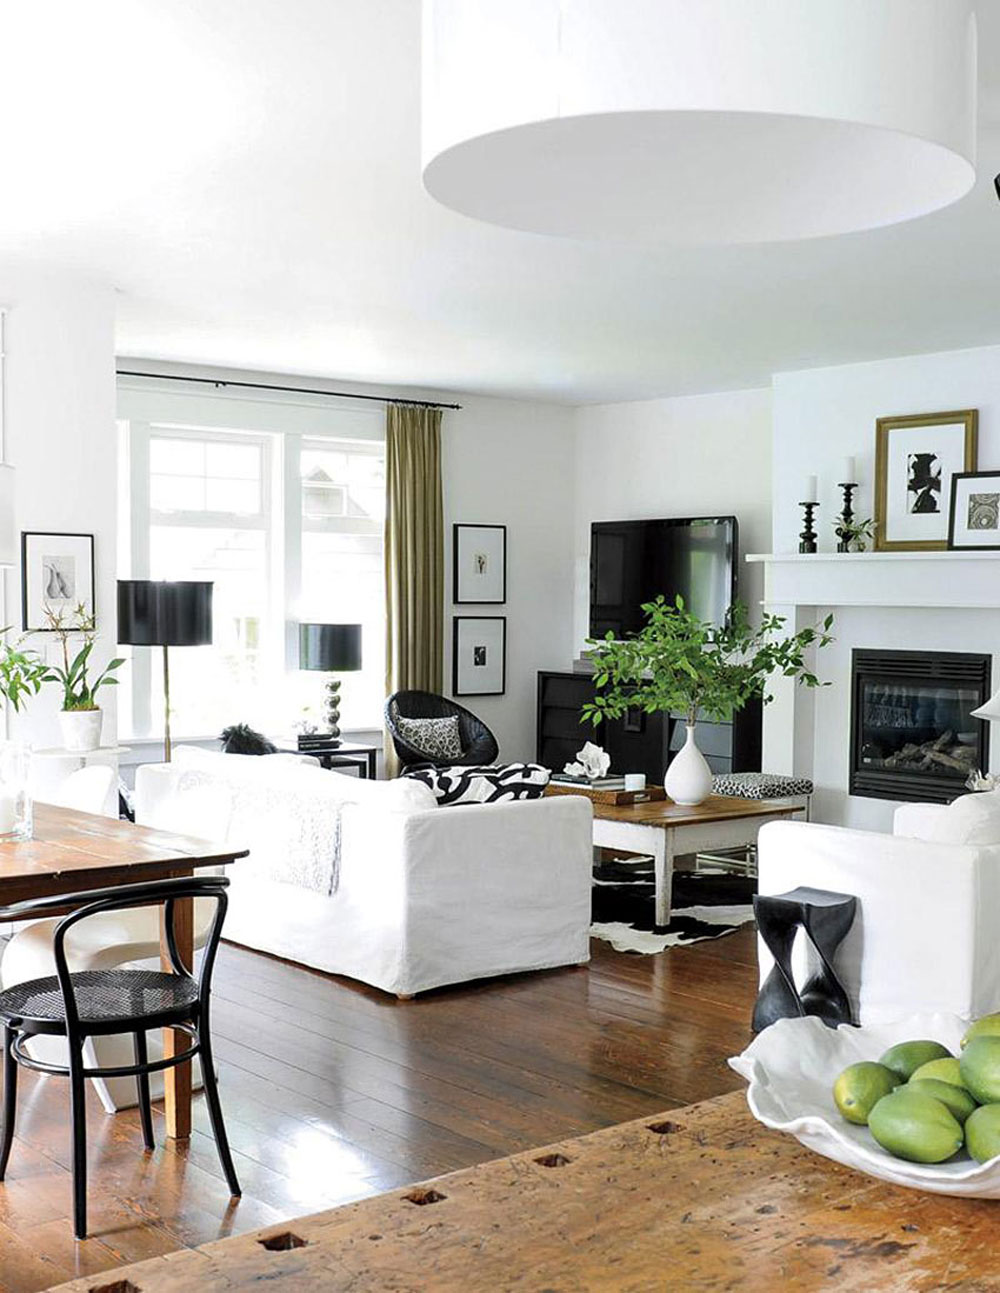 Living room-interior-ideas-you-should-try-for-your-house-6 living room-interior-ideas to try for your house